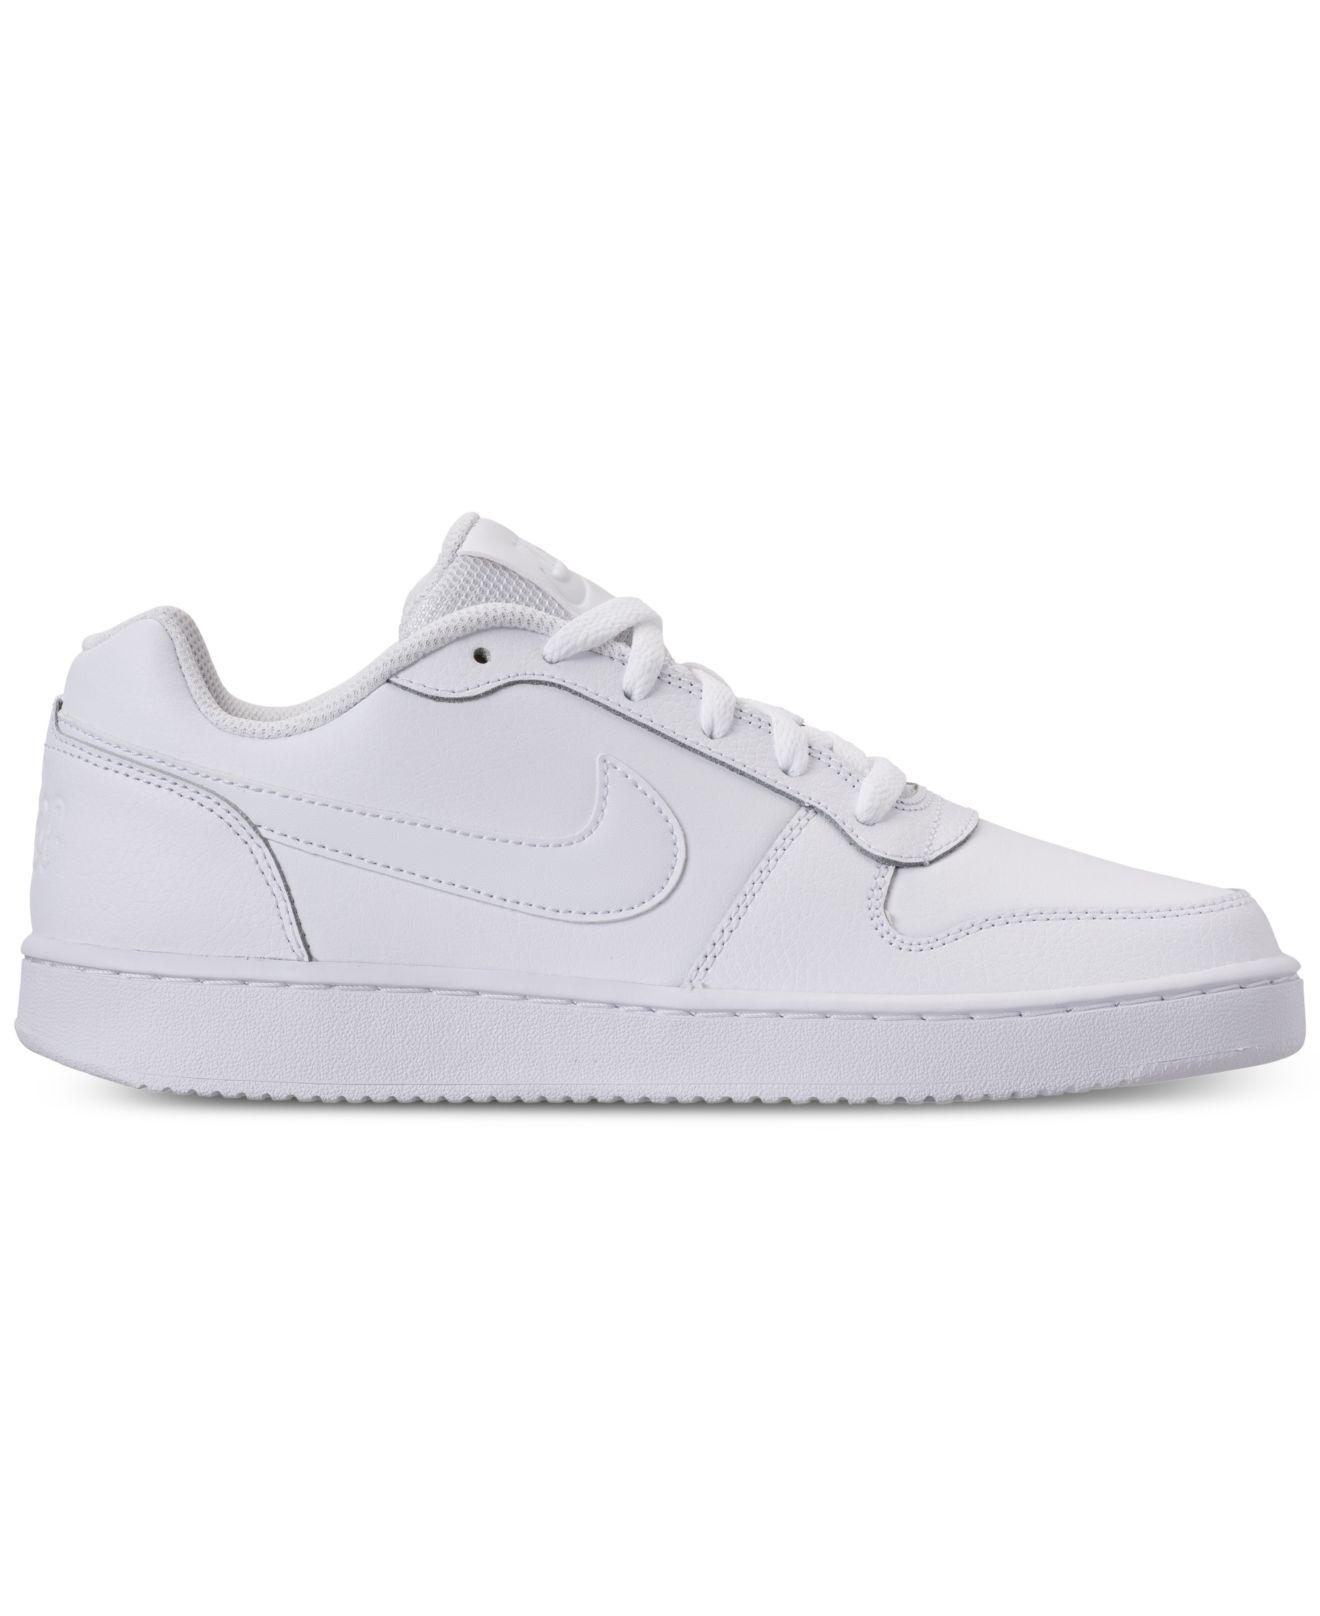 832dd5cec89 Lyst - Nike Ebernon Low Casual Sneakers From Finish Line in White for Men